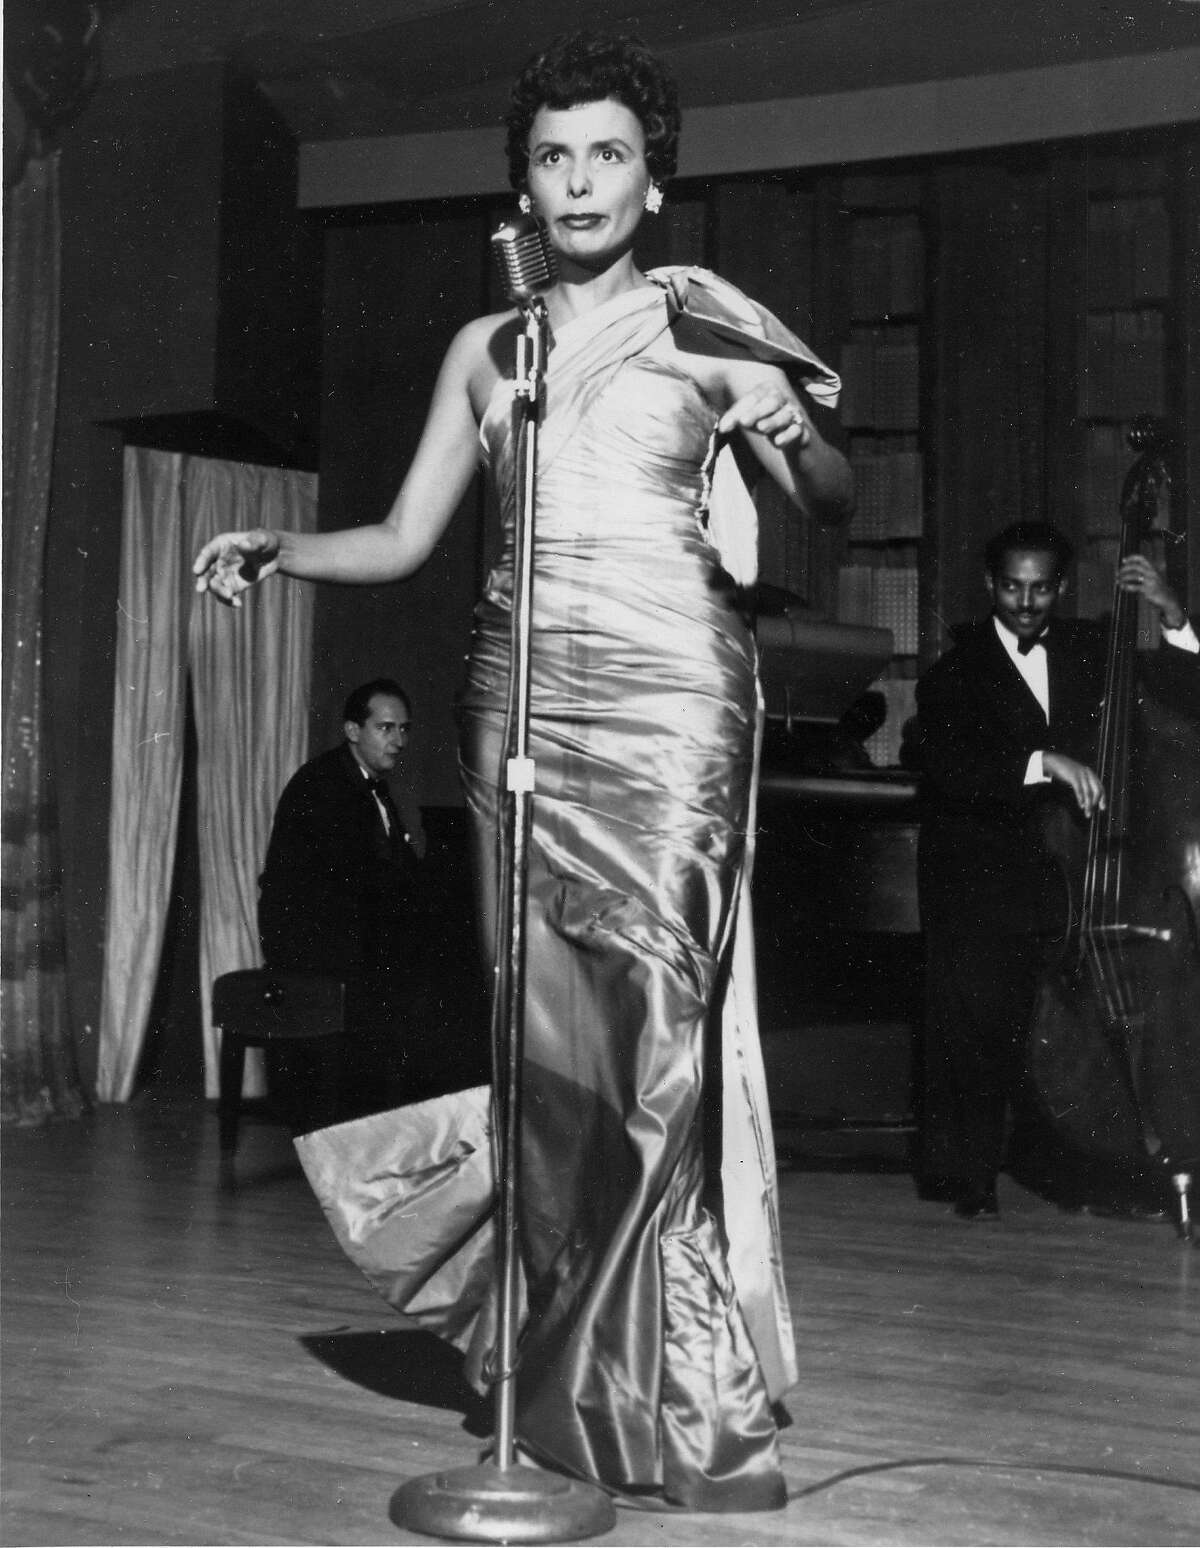 """File -- In a March 1954 file photo singer Lena Horne performs at the Sands Hotel in Las Vegas, Nev. Singer Lena Horne, who broke racial barriers as a Hollywood and Broadway star famed for her velvety rendition of """"Stormy Weather,"""" has died at age 92. (AP Photo)"""